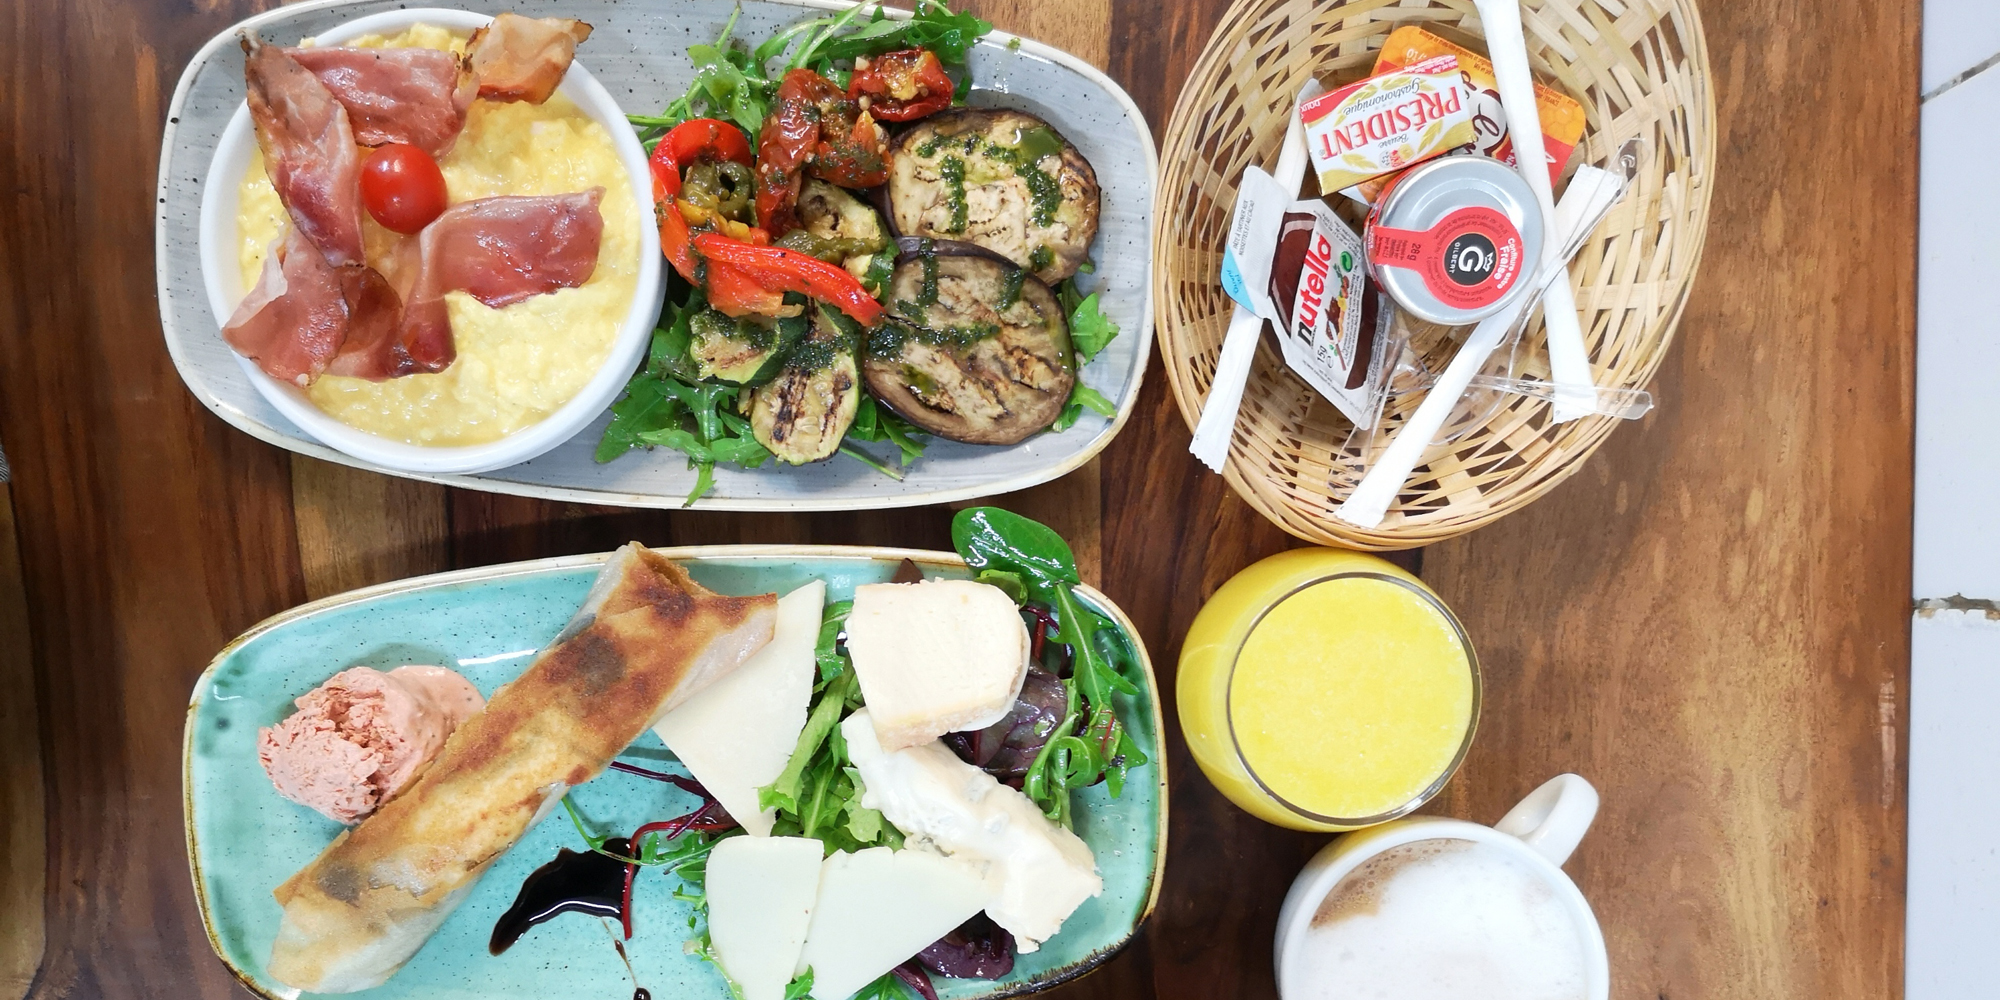 Brunch Il Gallo Nero (75014 Paris)